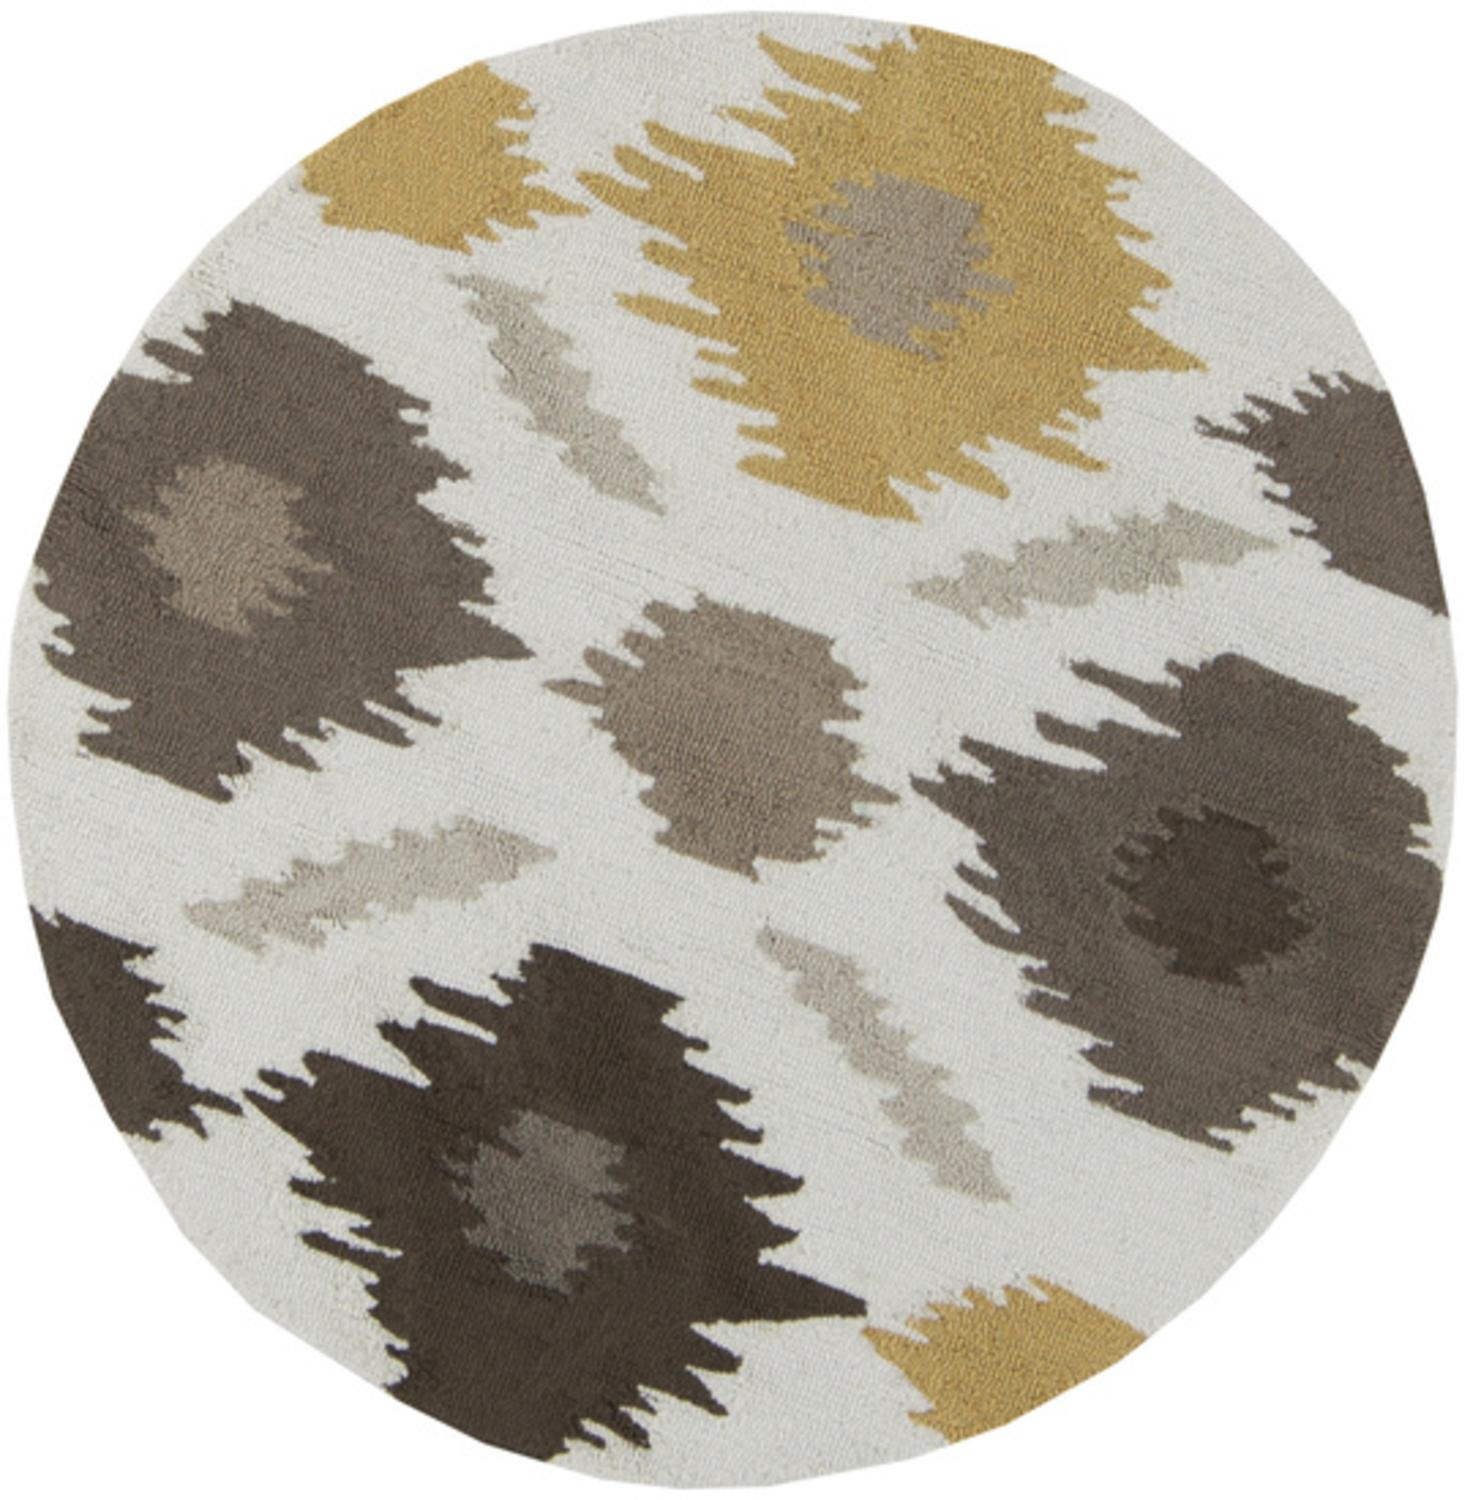 3' Amarillo Gold, Mushroom and Feather Gray Hand Hooked Round Area Throw Rug